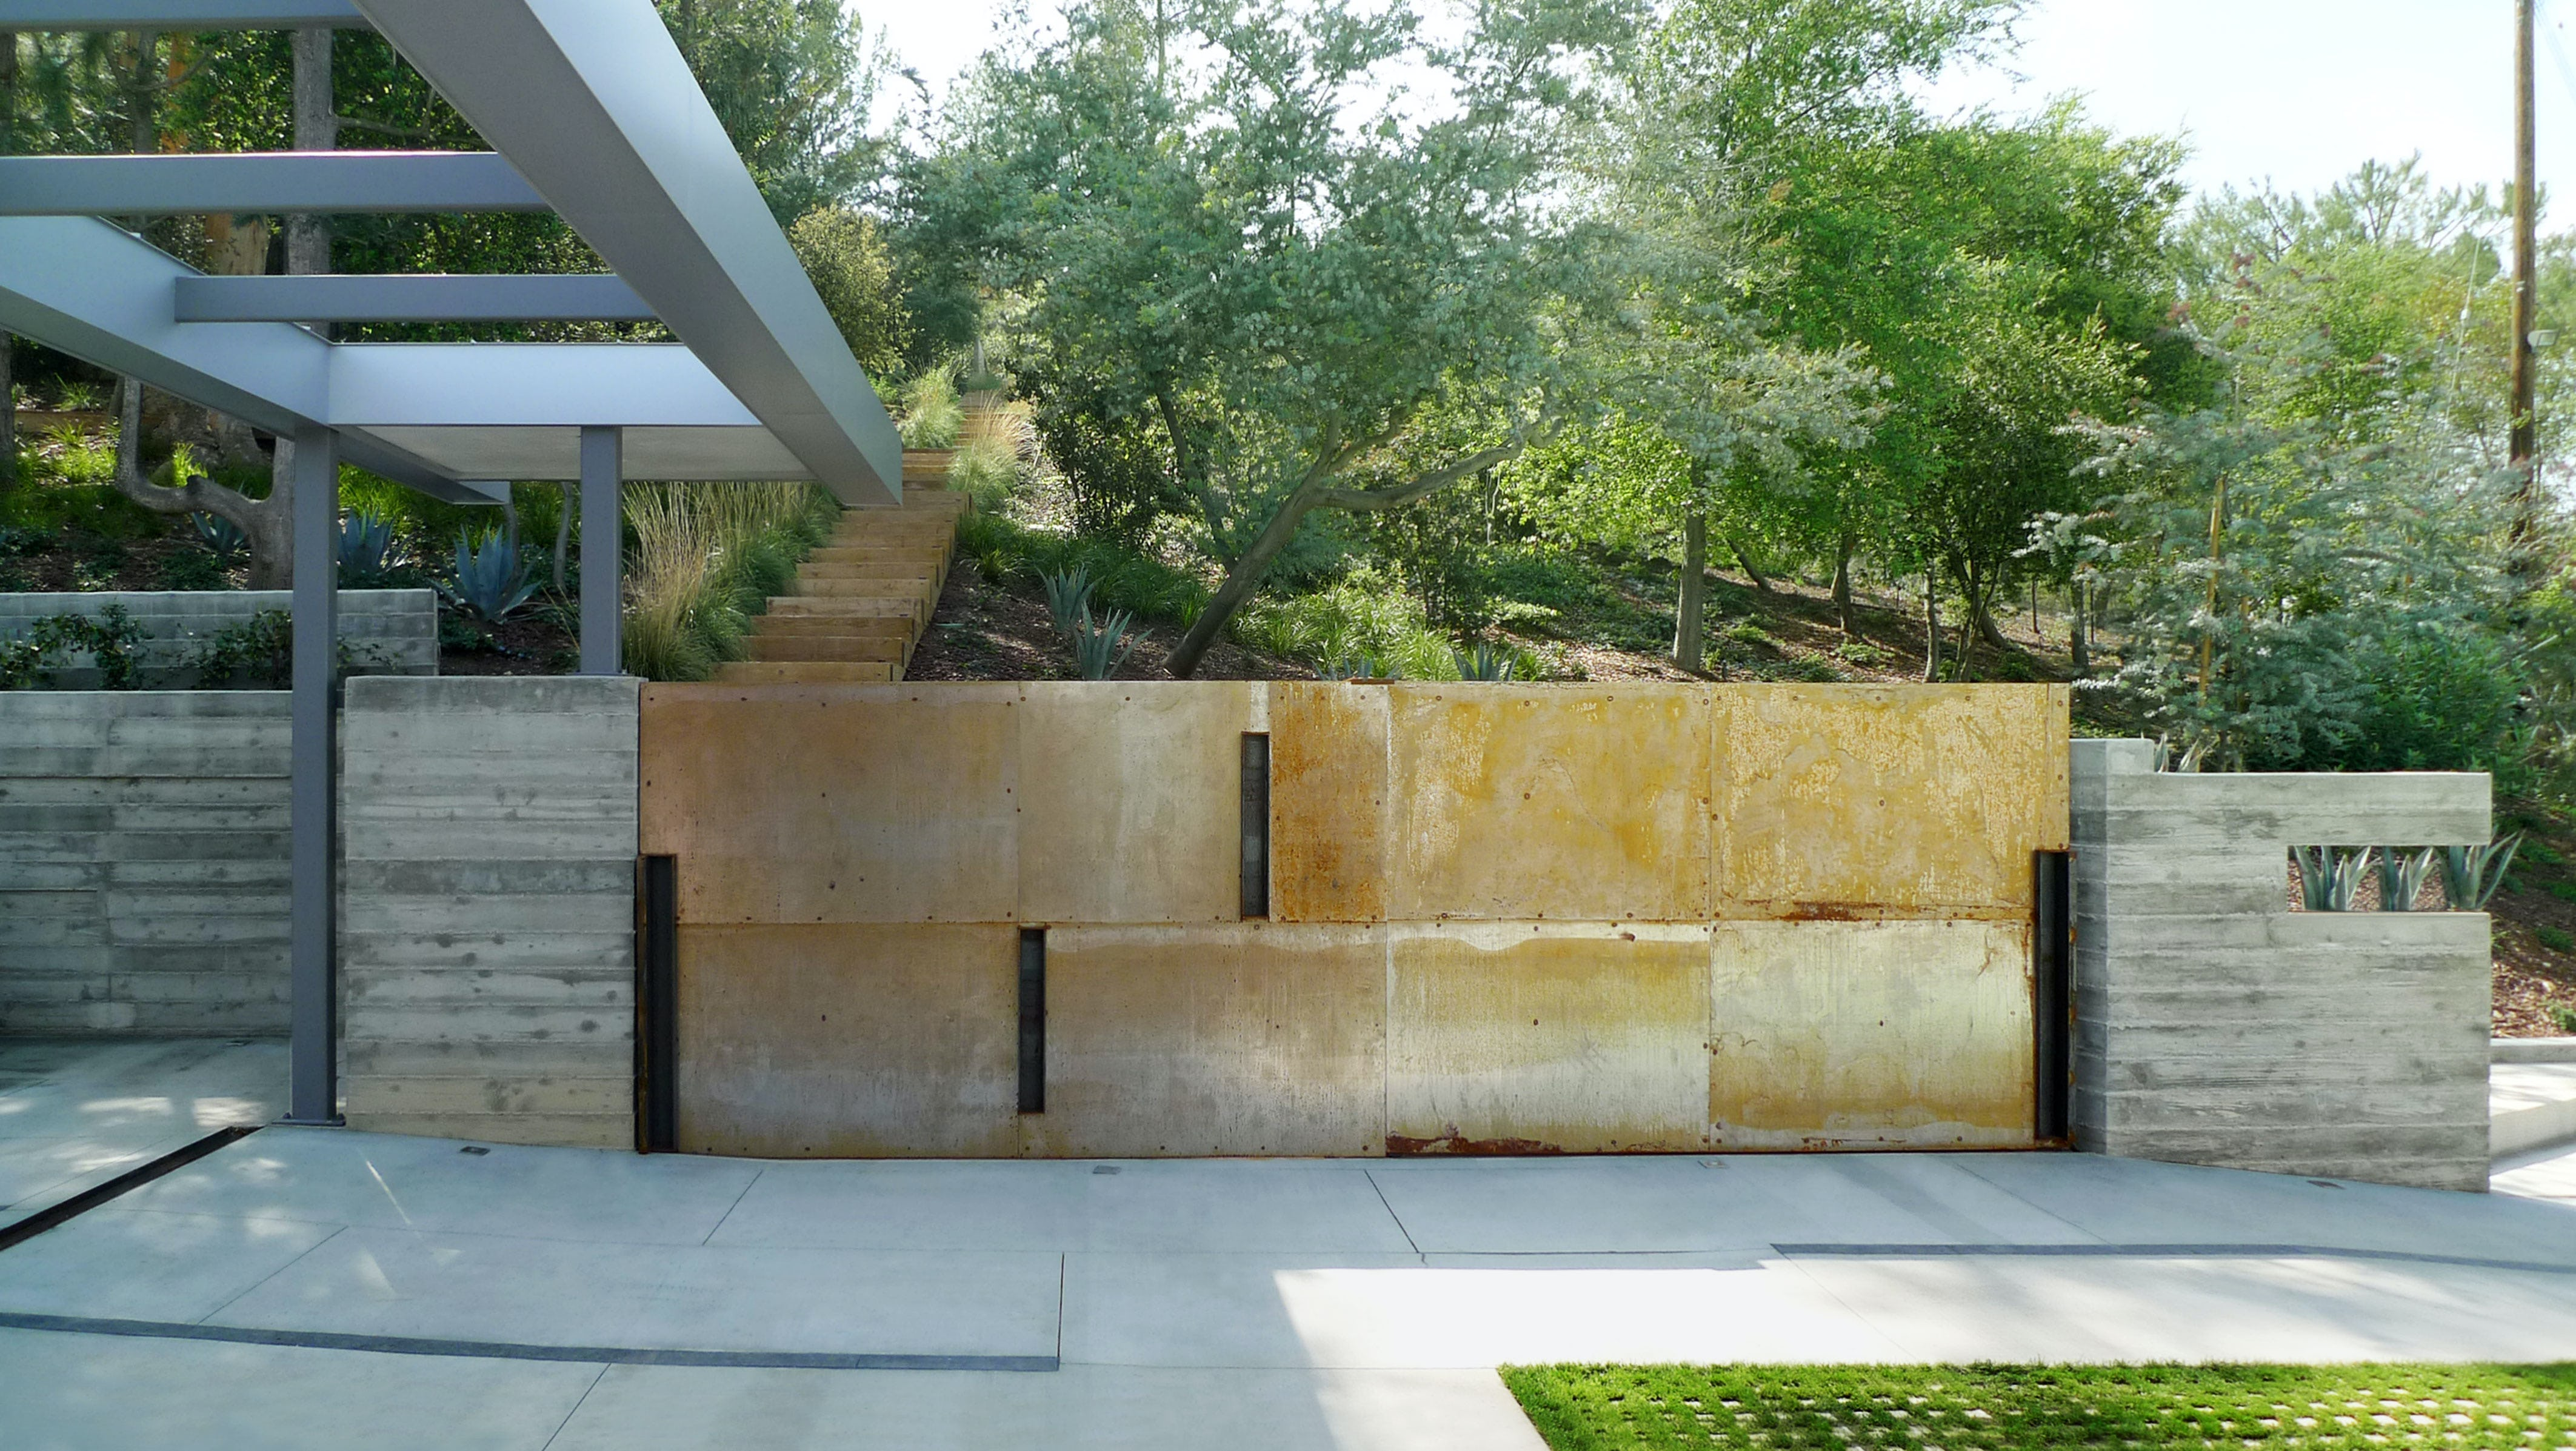 Fer factor residence driveway2